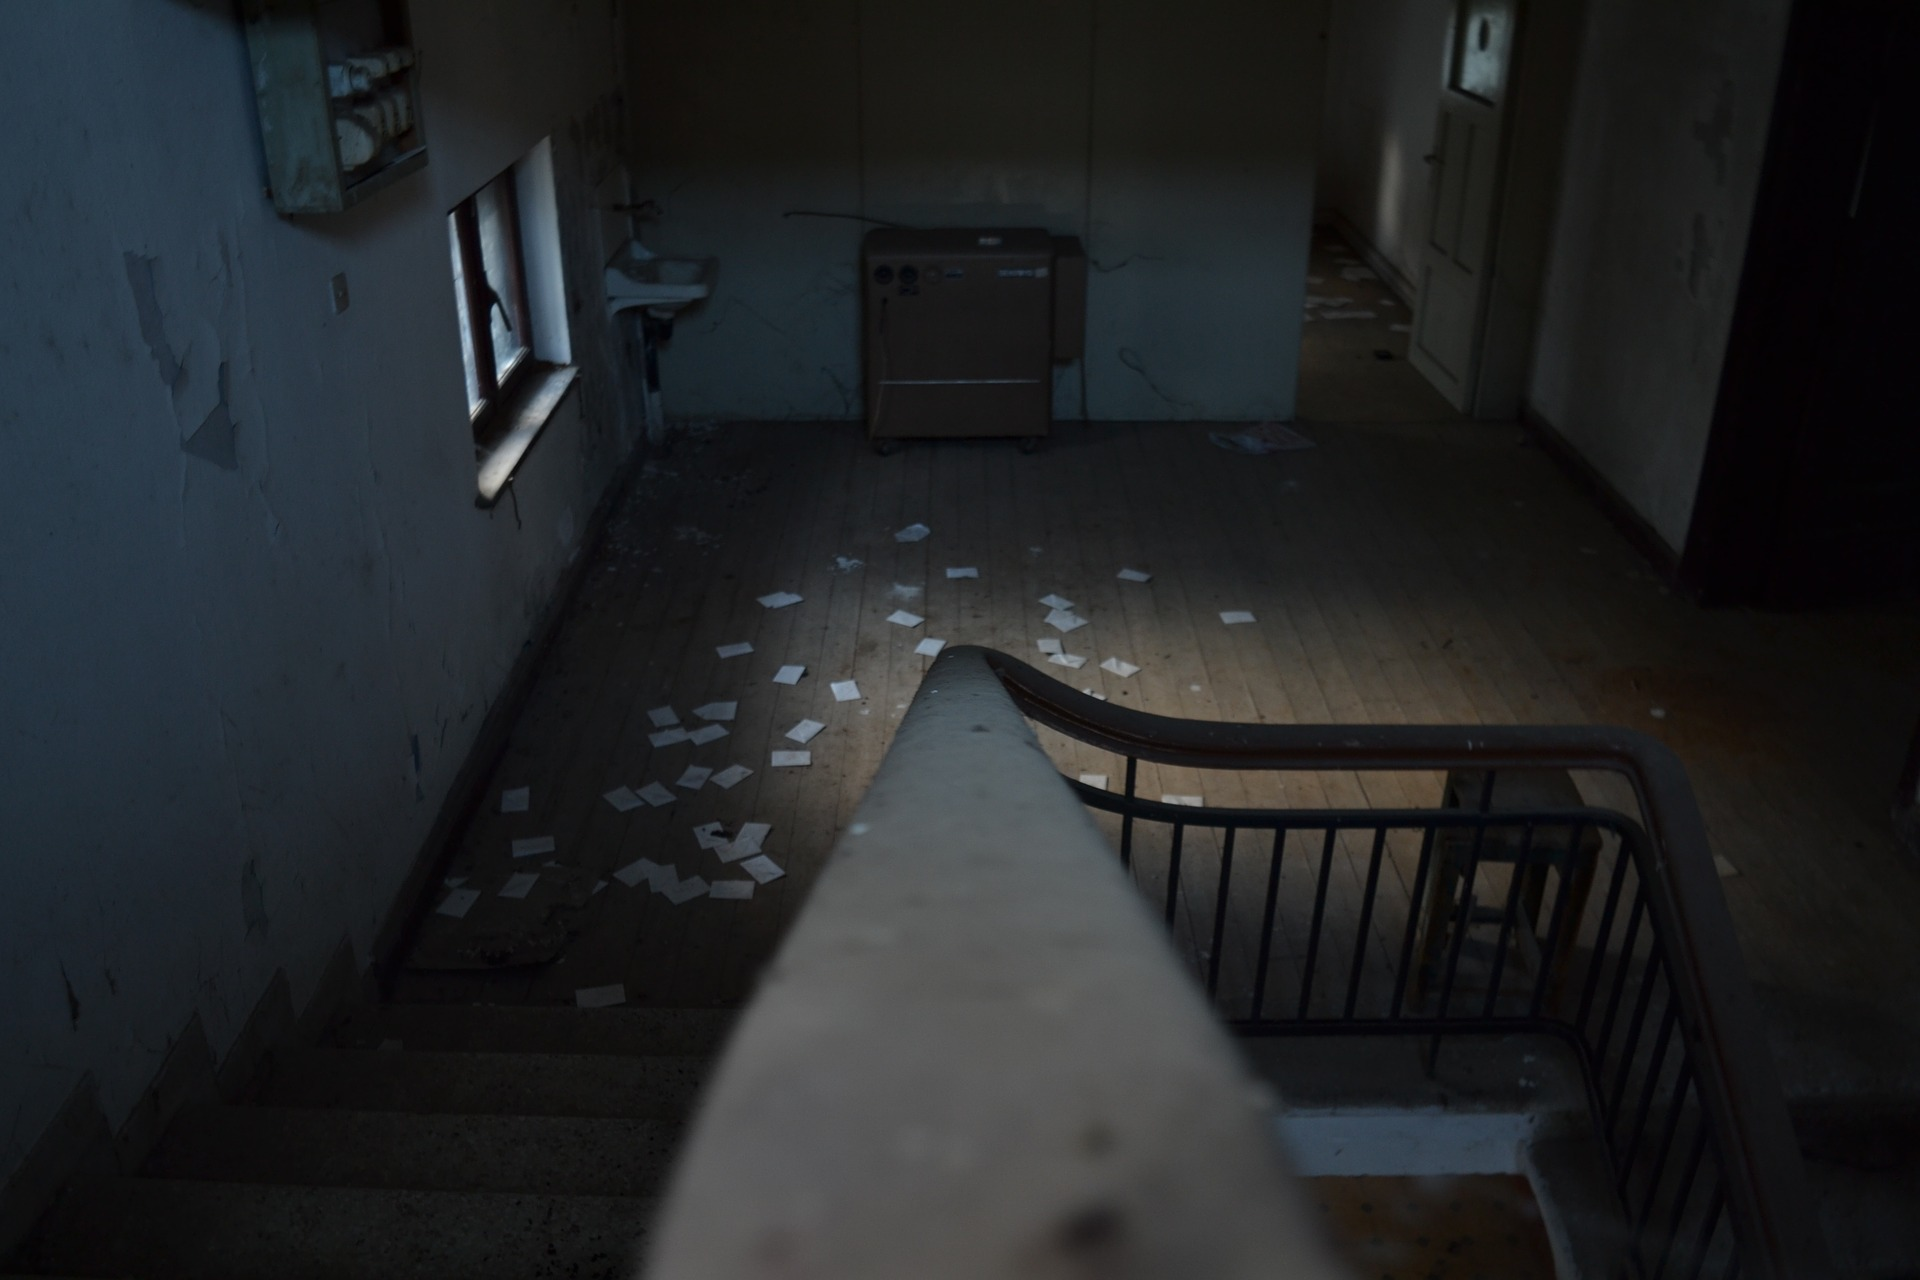 An abandoned house, seen from above on the bannister. Paper litters a dark, empty room.